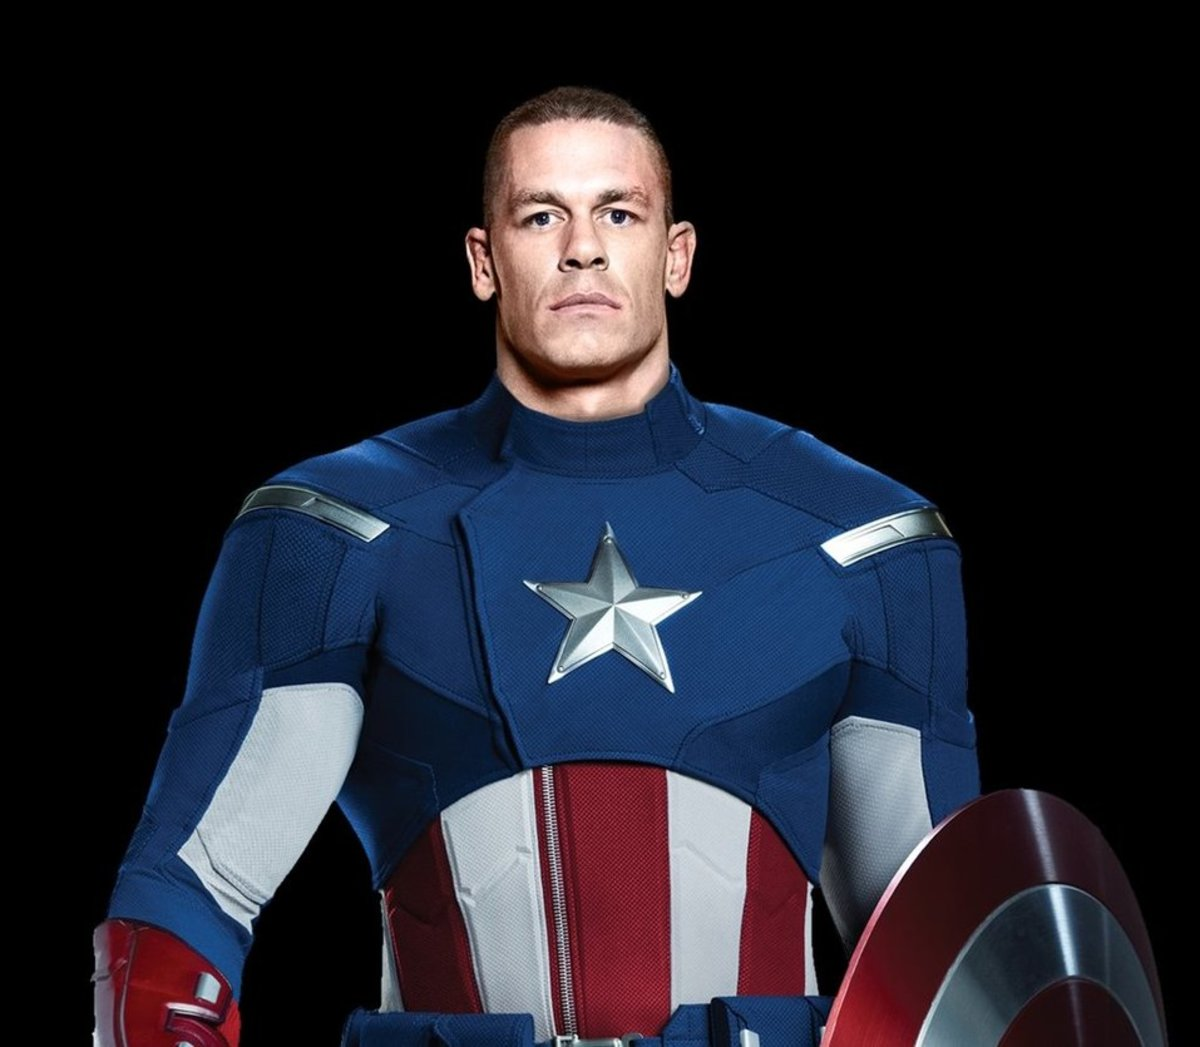 All American hero John Cena as Captain America.